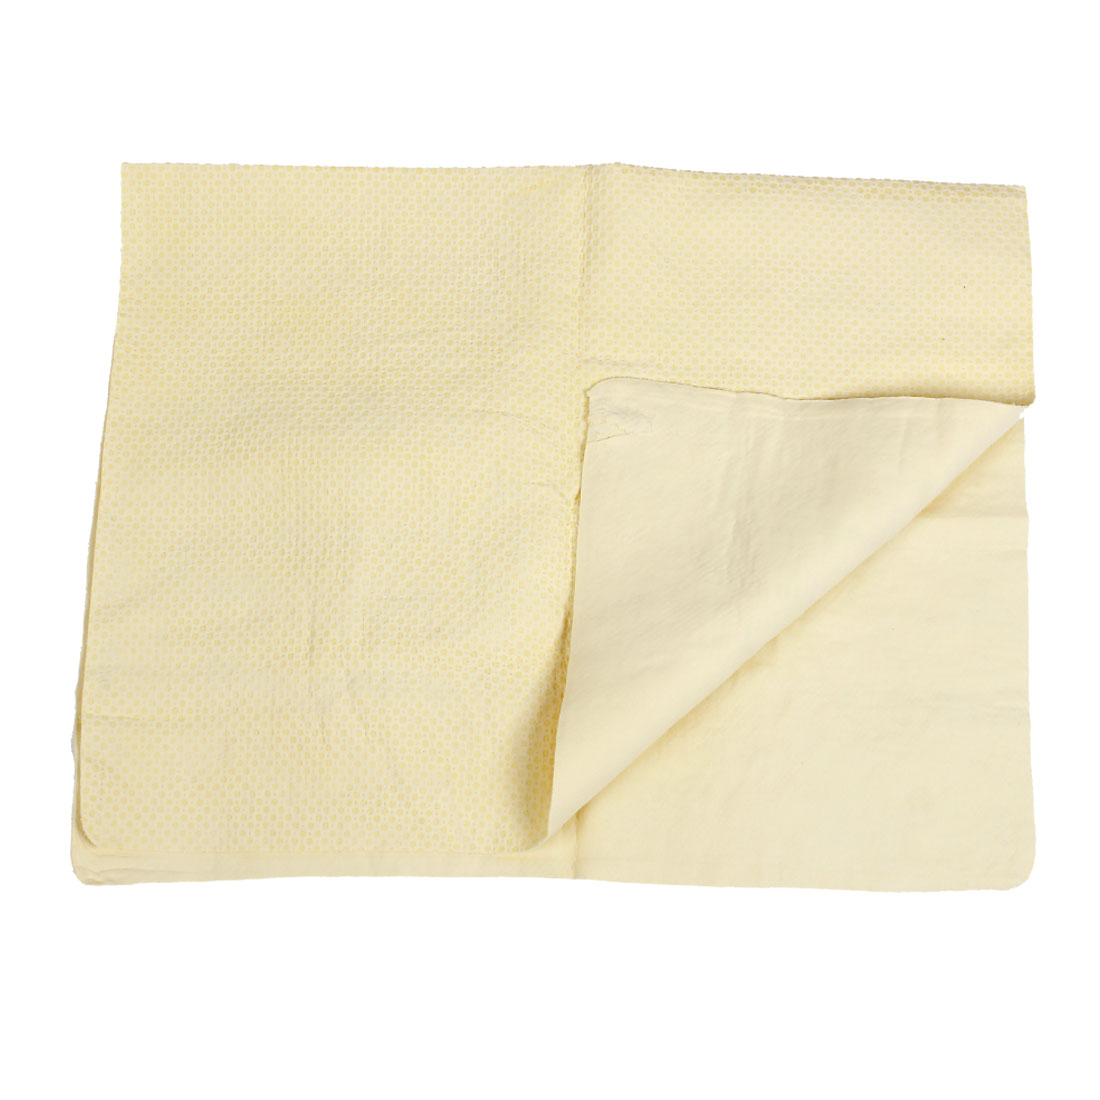 Yellow Furniture Car Glass Clean Retangle Cham Synthetic Chamois Water Absorb Towel 66 x 43cm